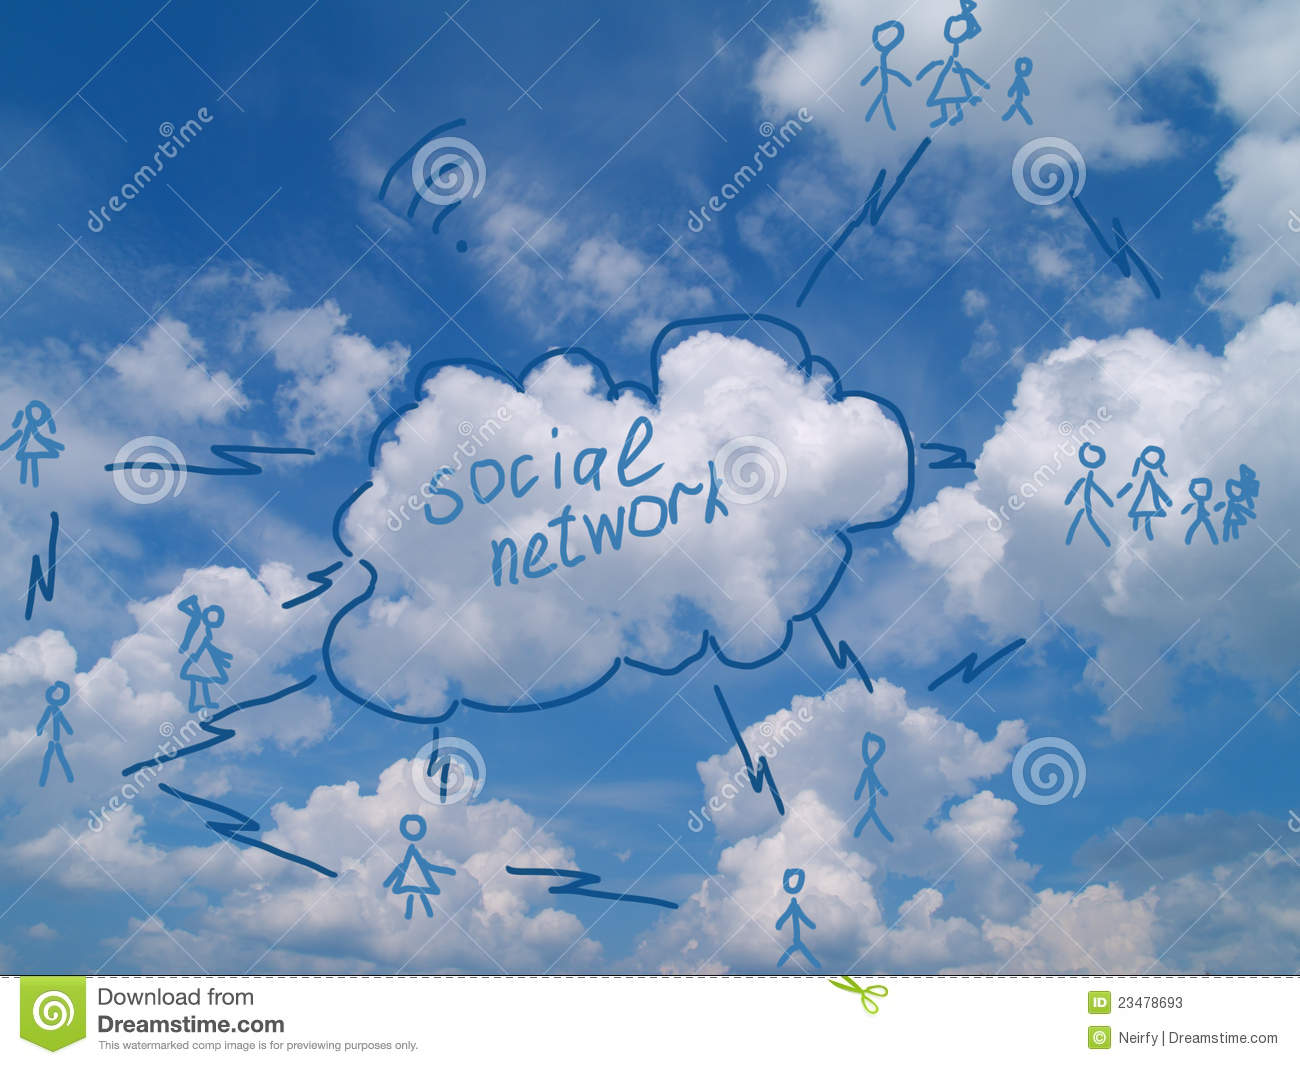 Social networking scheme drawed over cloudy sky